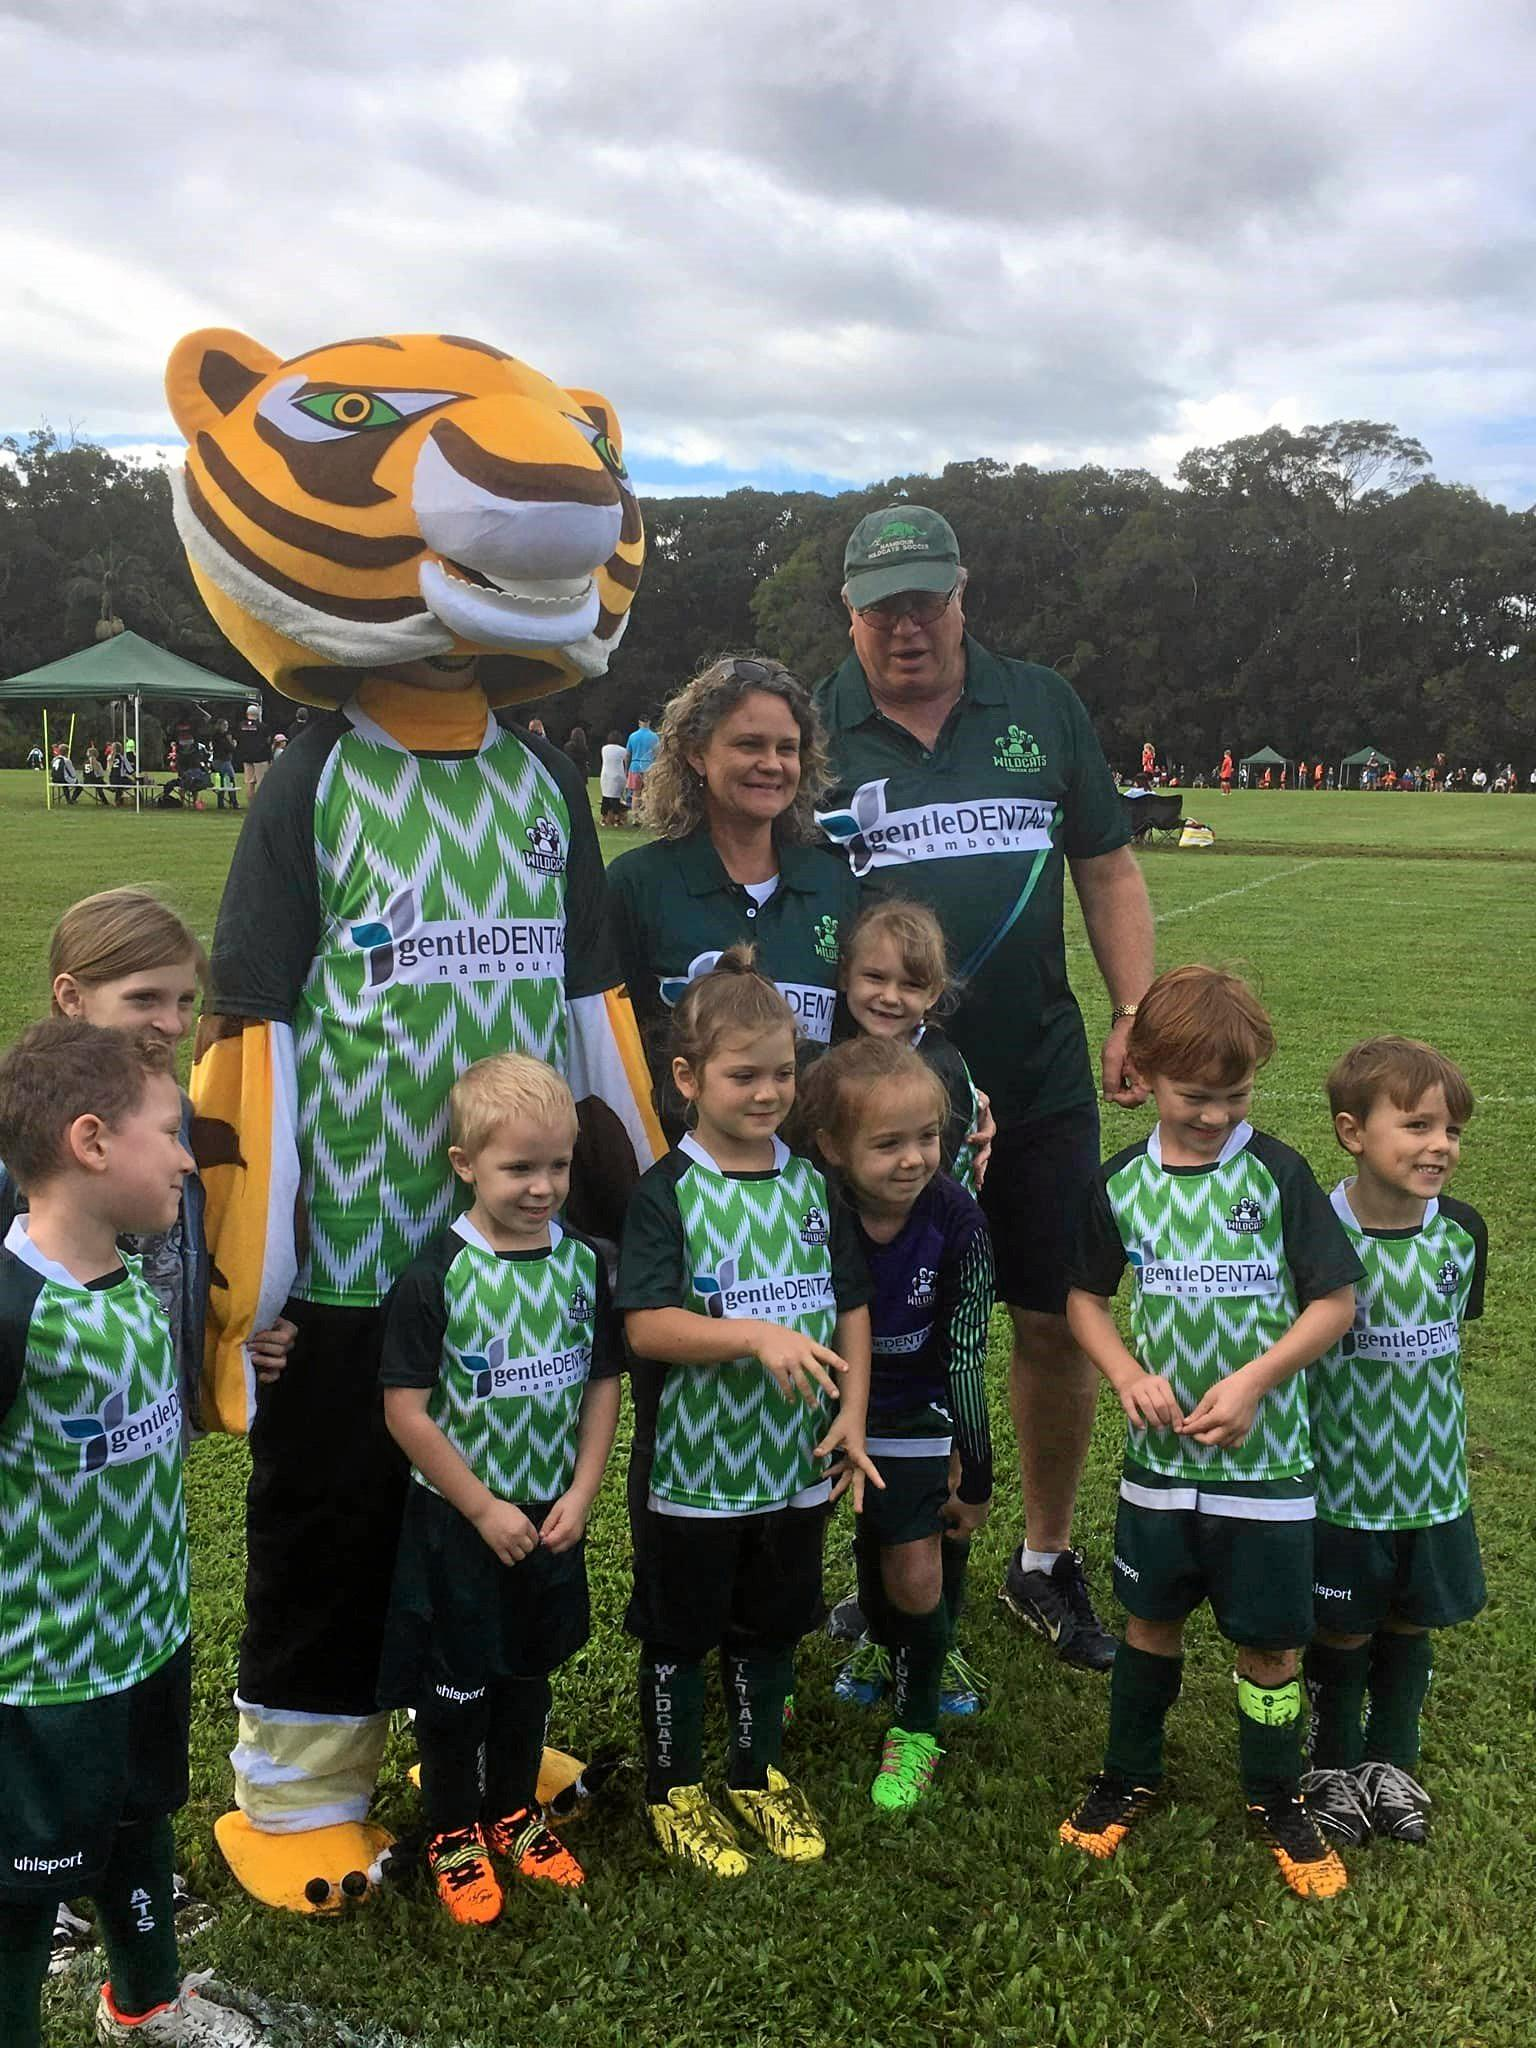 Nambour Wildcats Under 6 Black Leopard Cubs with the club mascot are enjoying their new home grounds at the PCYC Nambour.